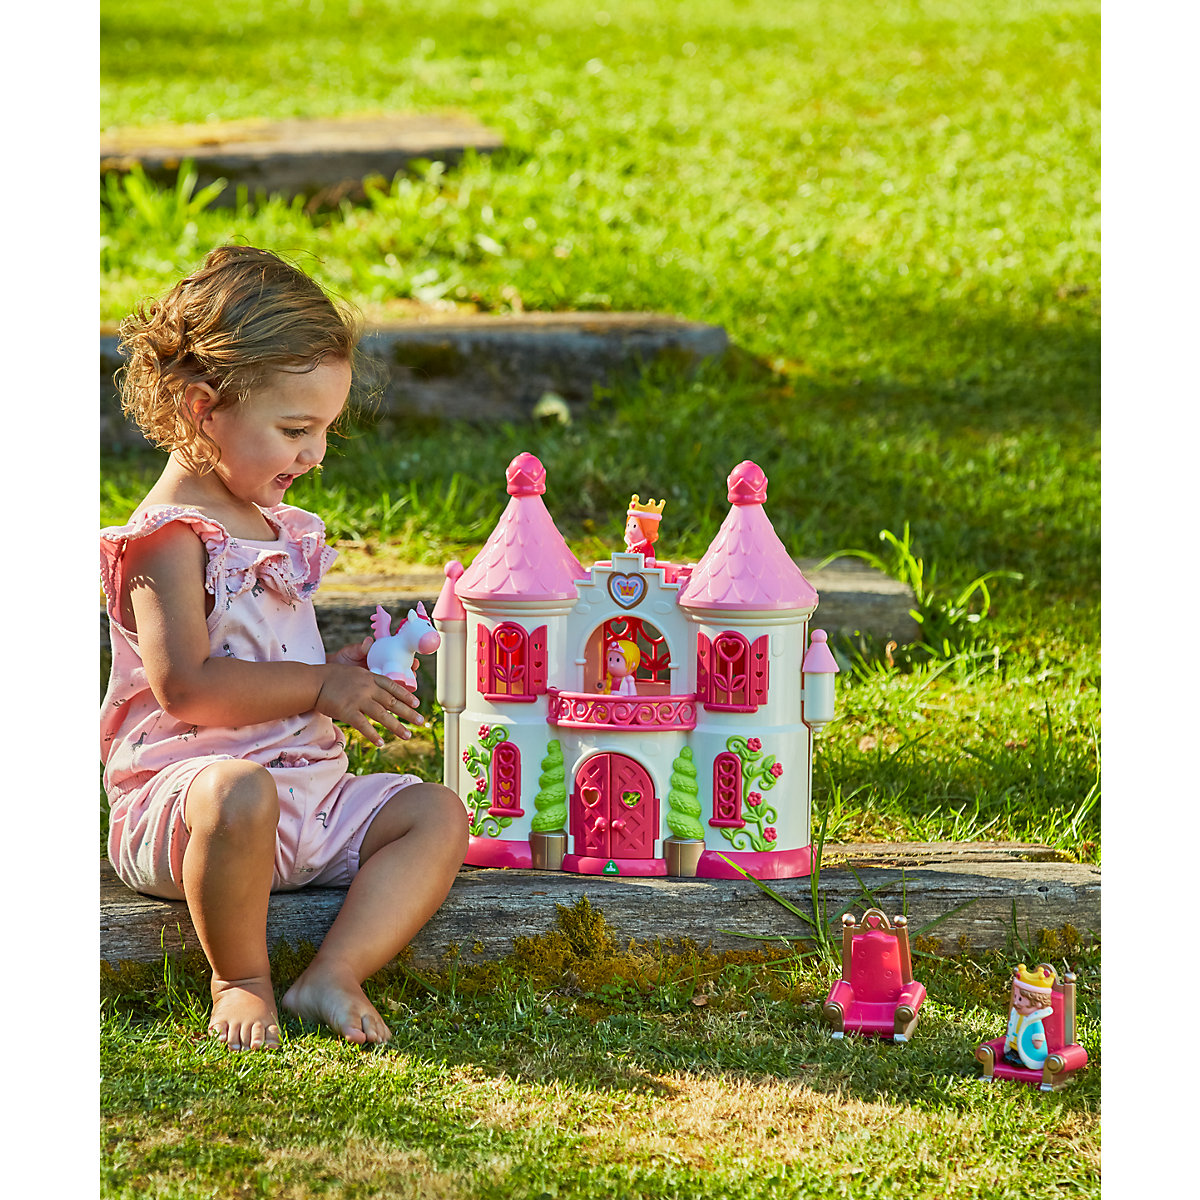 Toys For Girls 18 Months : New elc boys and girls happyland fantasy palace toy from